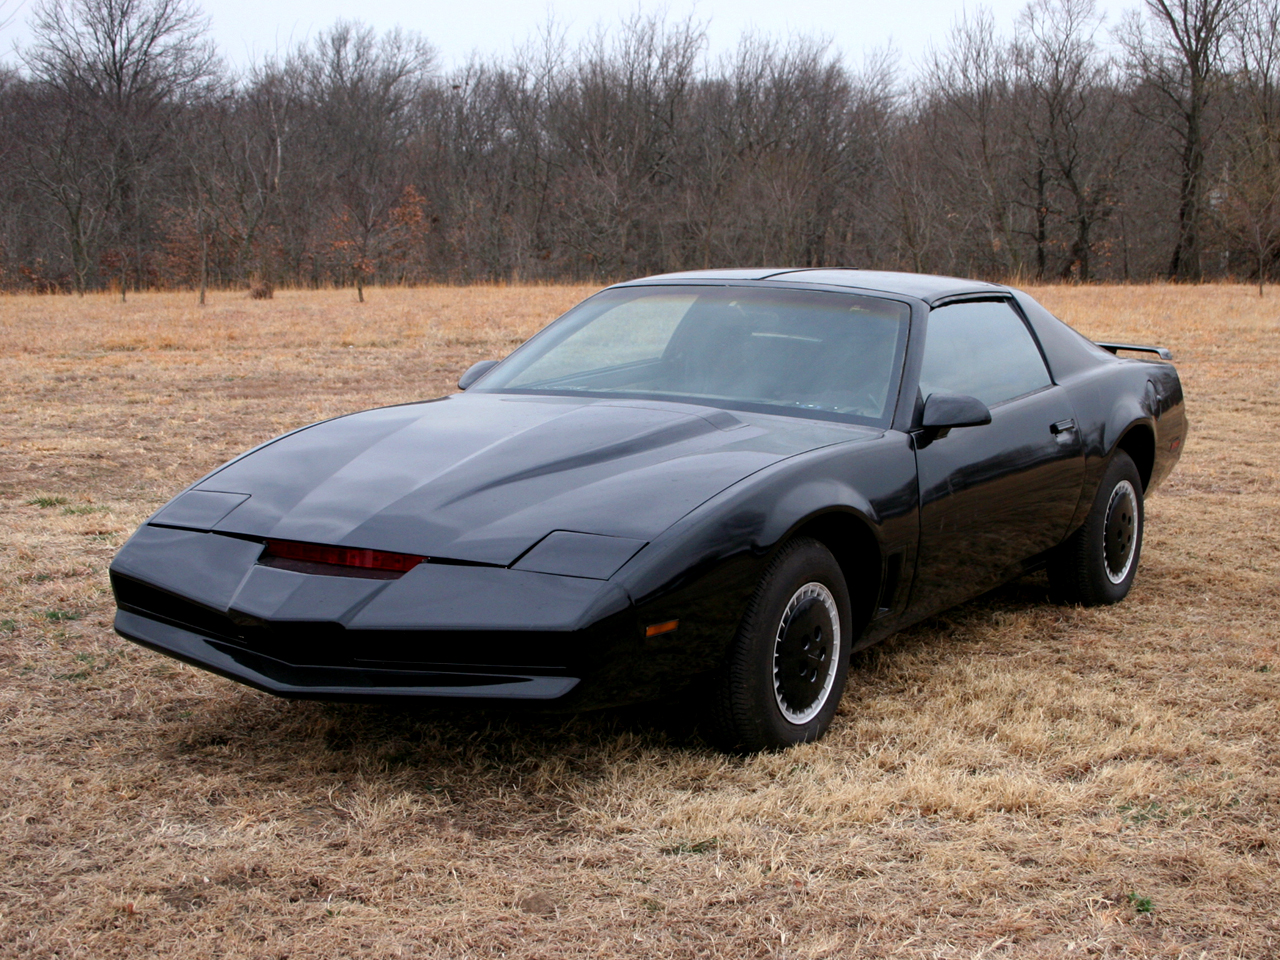 41+] Knight Rider KITT Car Wallpapers Download on